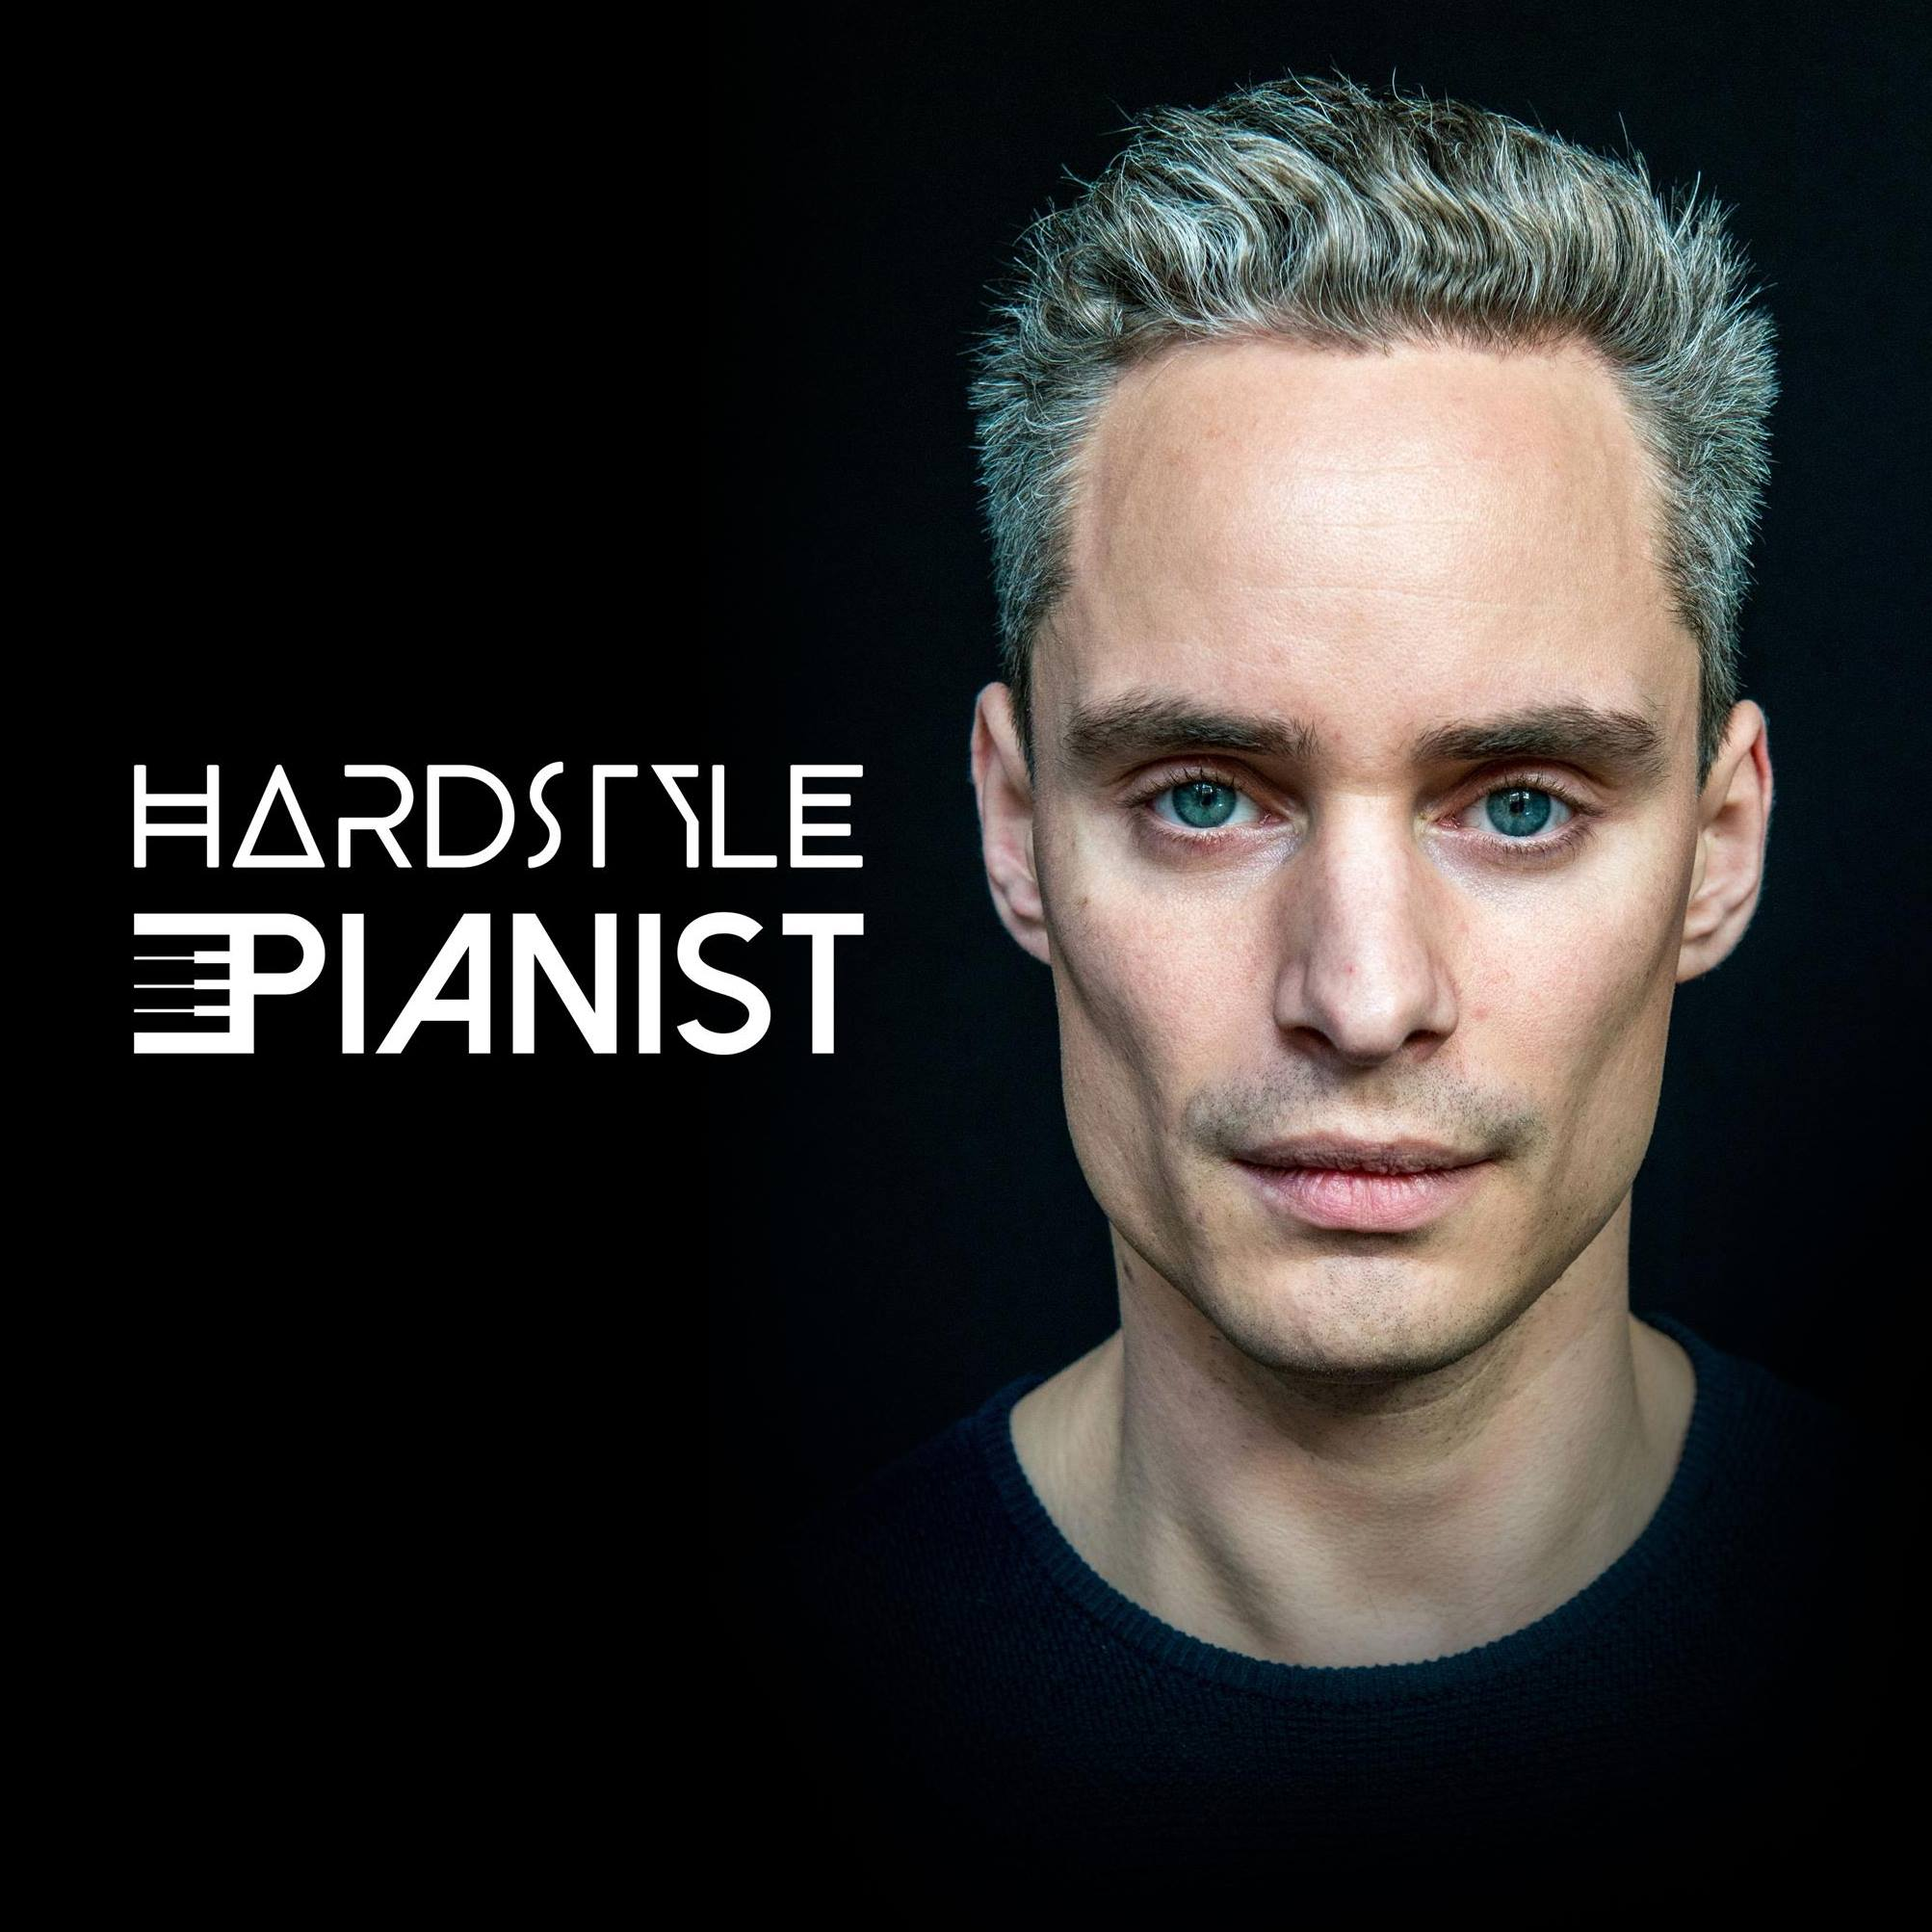 hardstyle-pianist-ignite-music-management